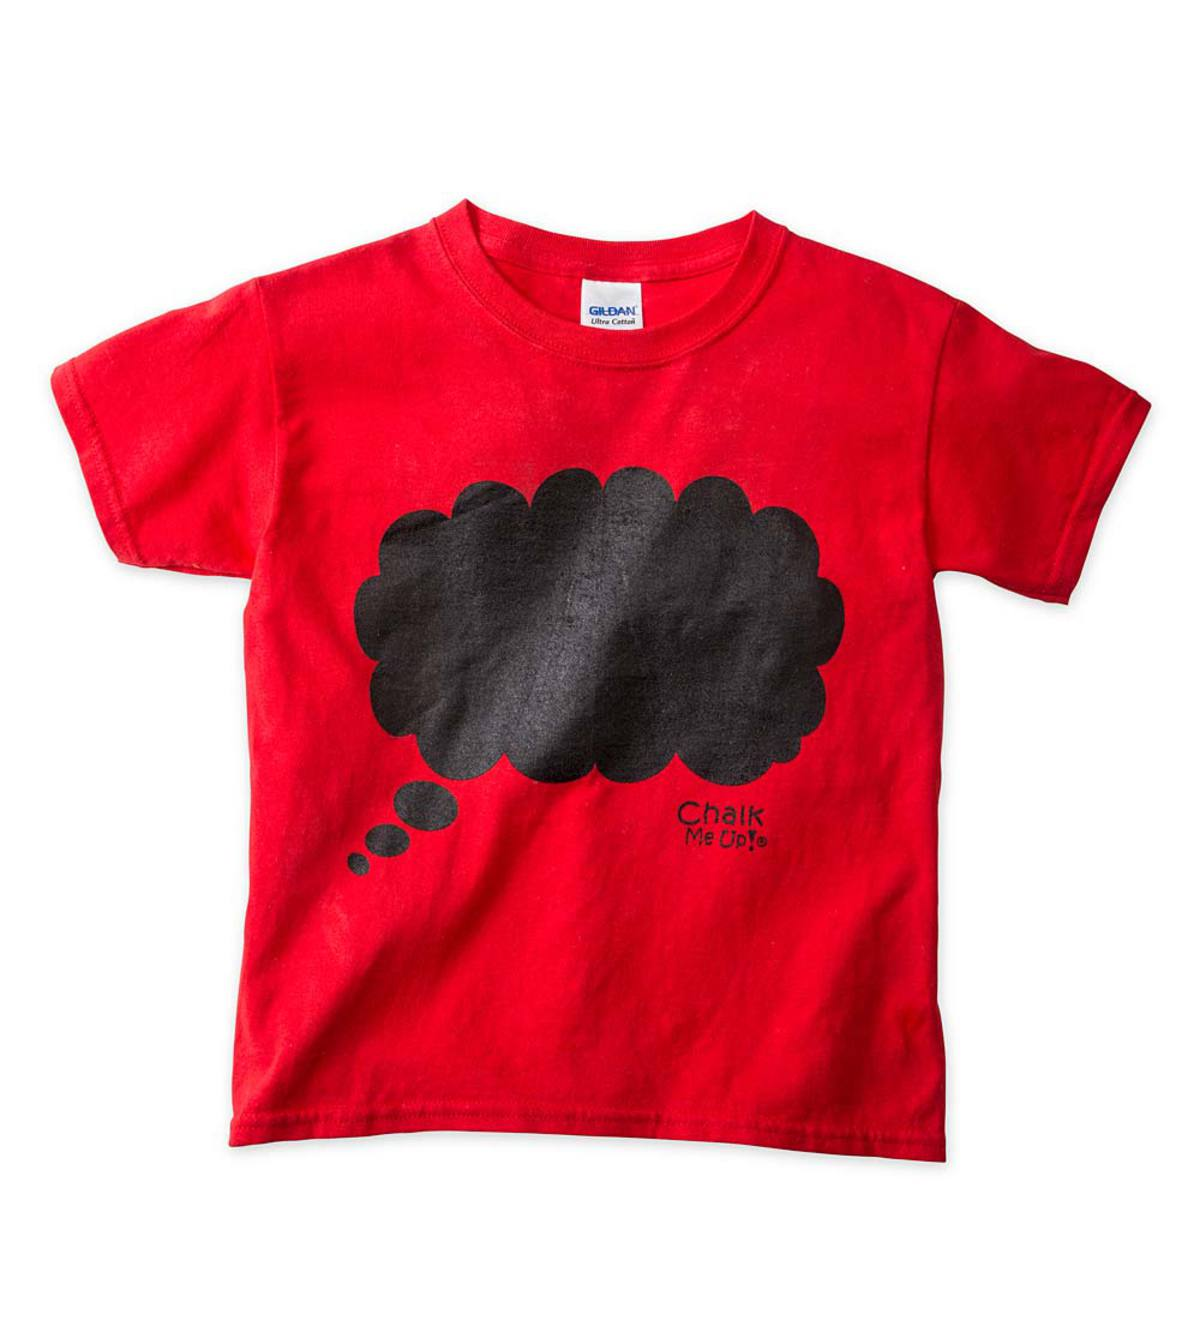 Thought Cloud Chalkboard Tee Shirt - Red - 10/12